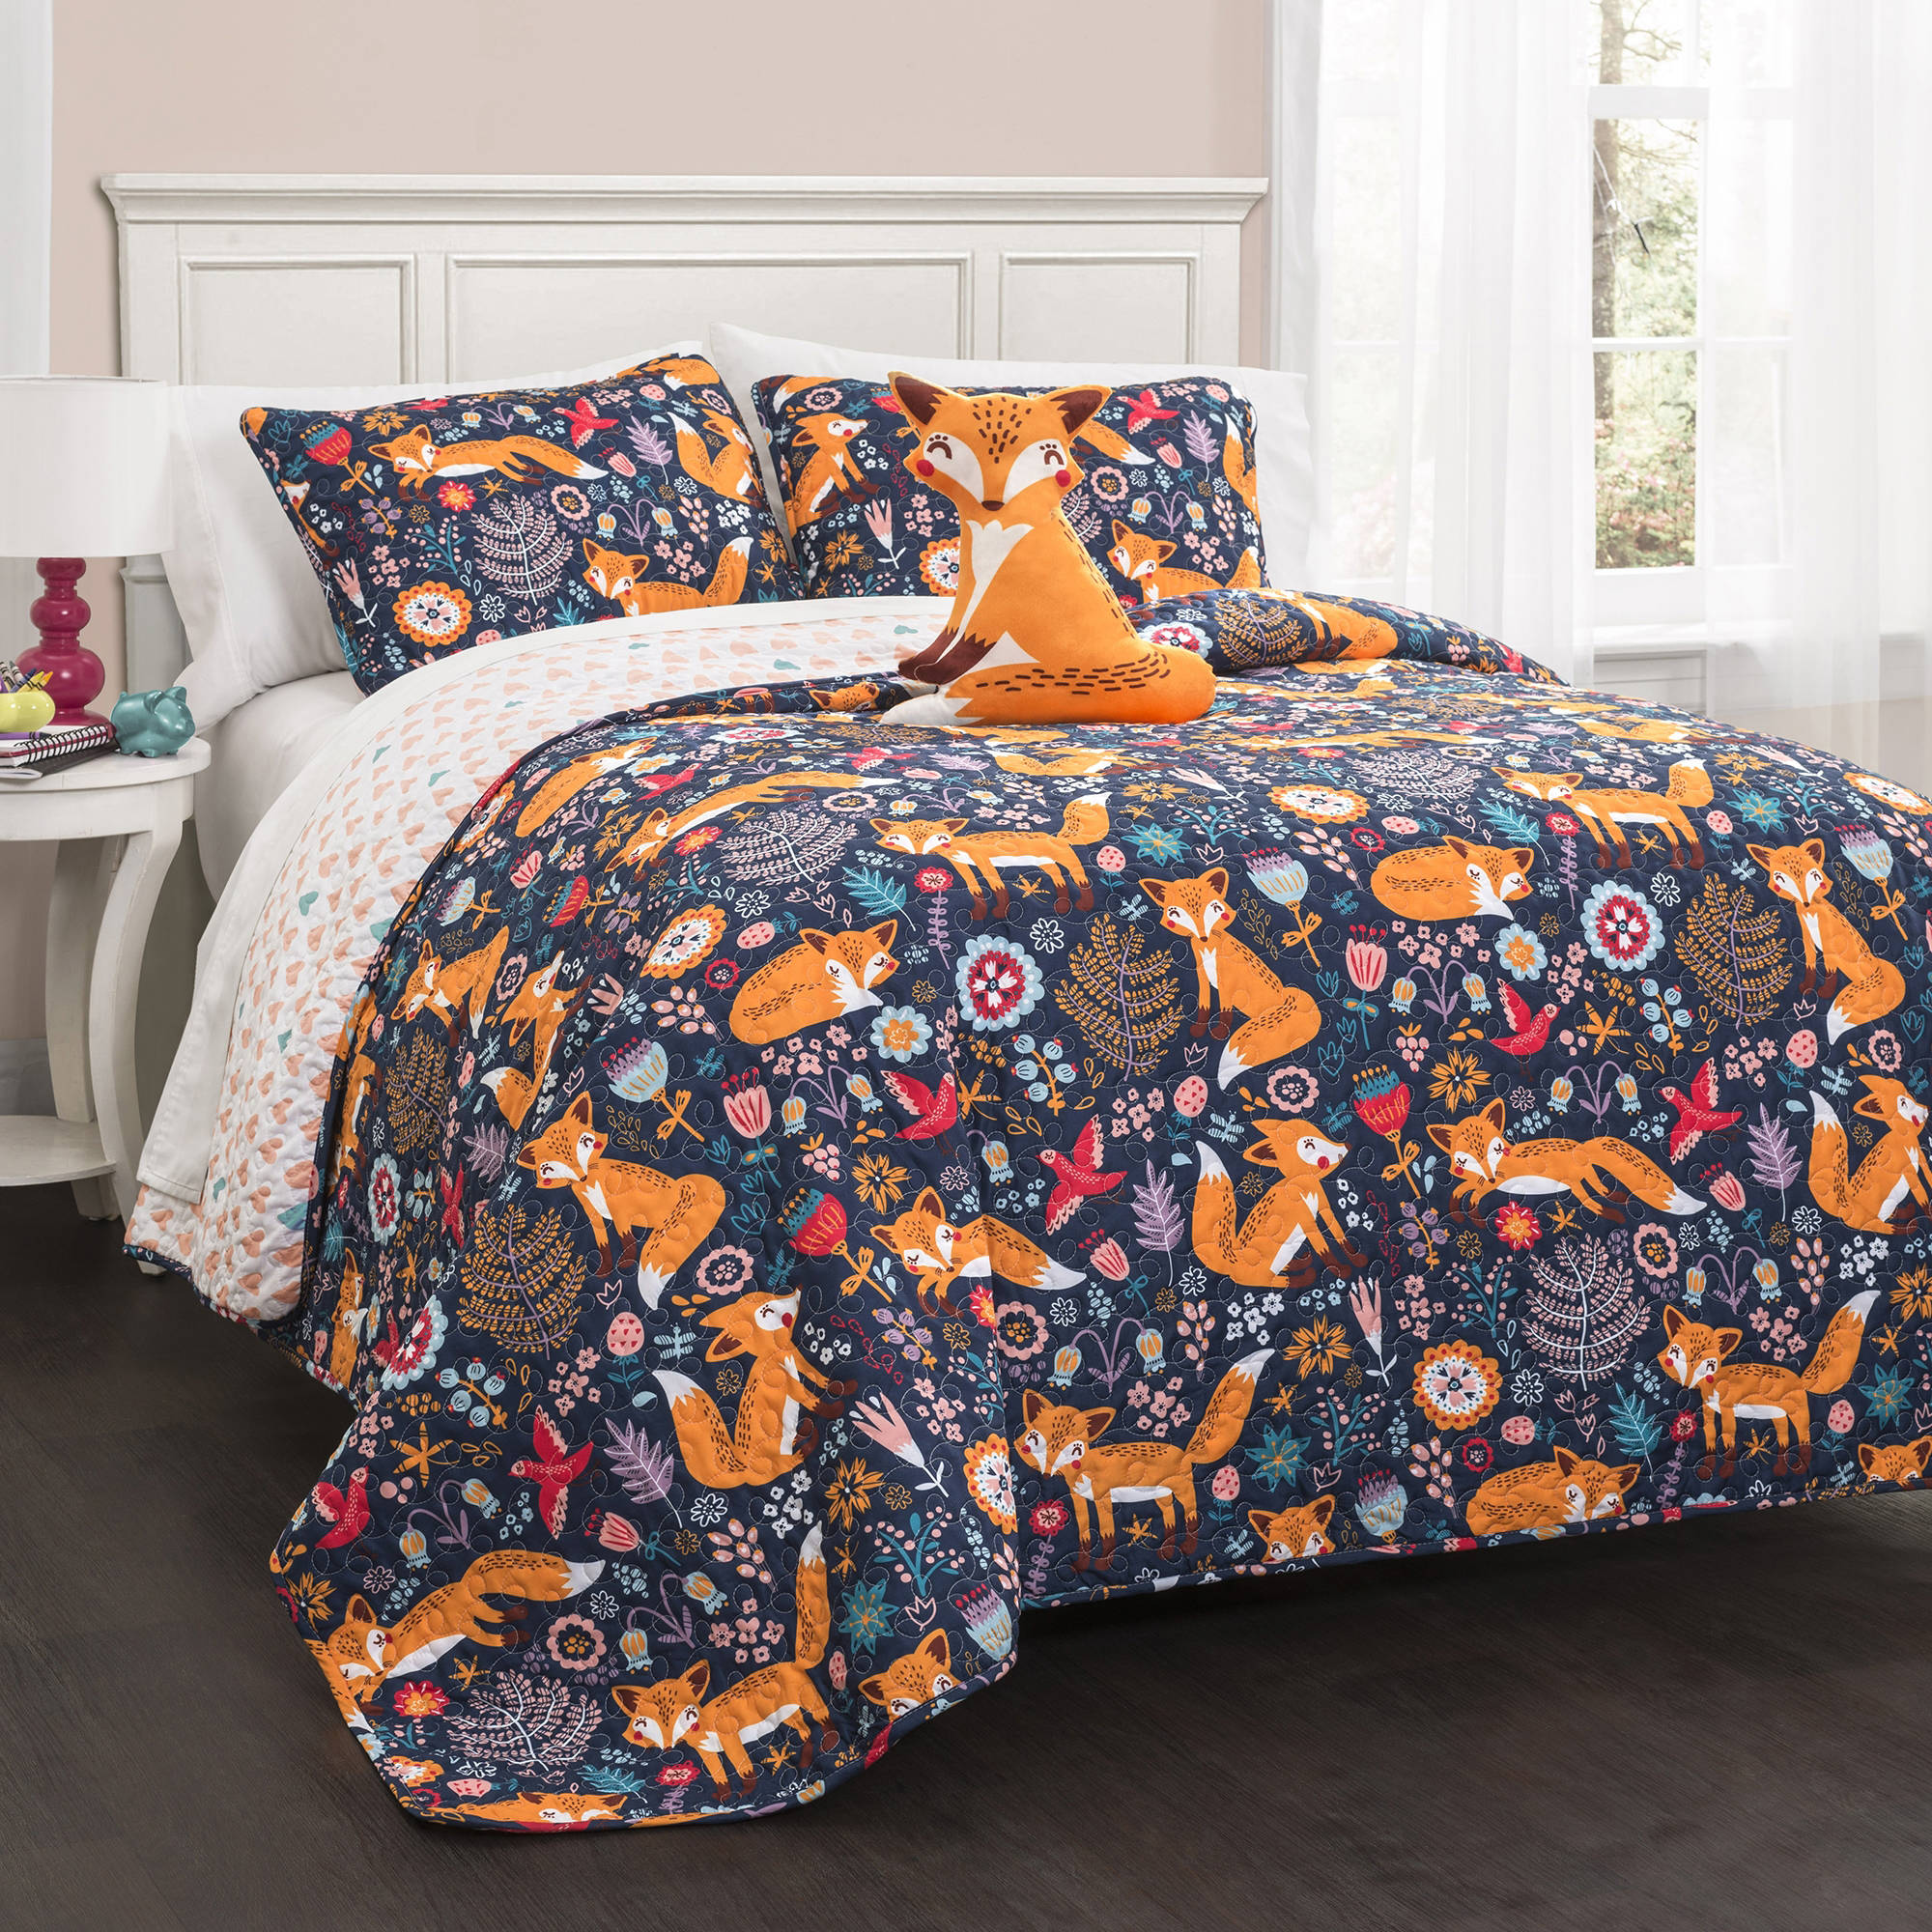 Pixie Fox Quilt Navy 4-Piece Set